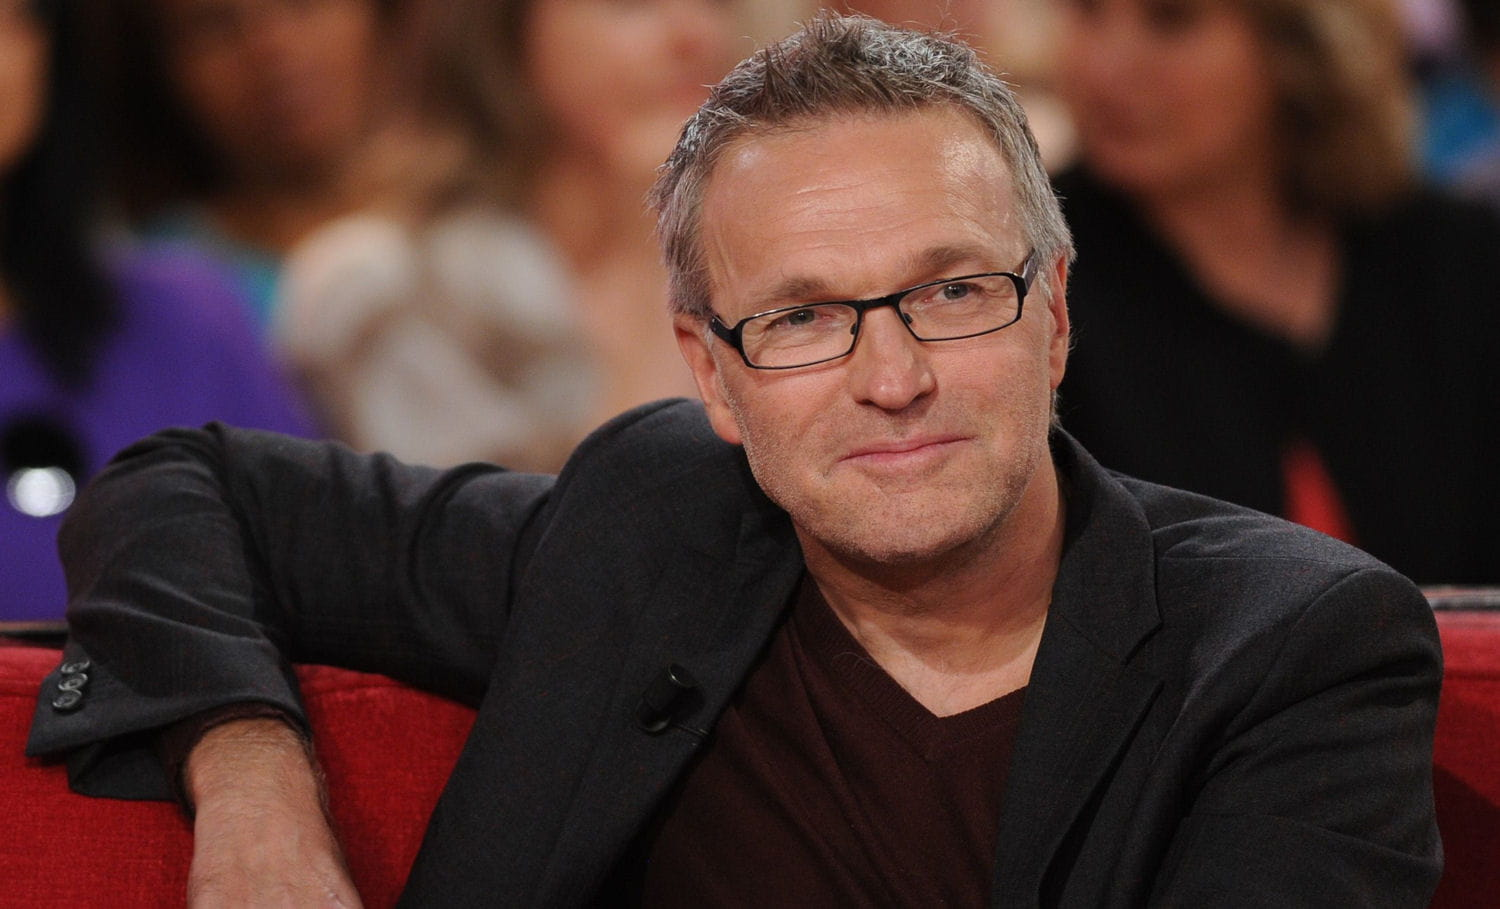 On n 39 est pas couch laurent ruquier insult par gilbert - Laurent ruquier on n est pas couche replay ...